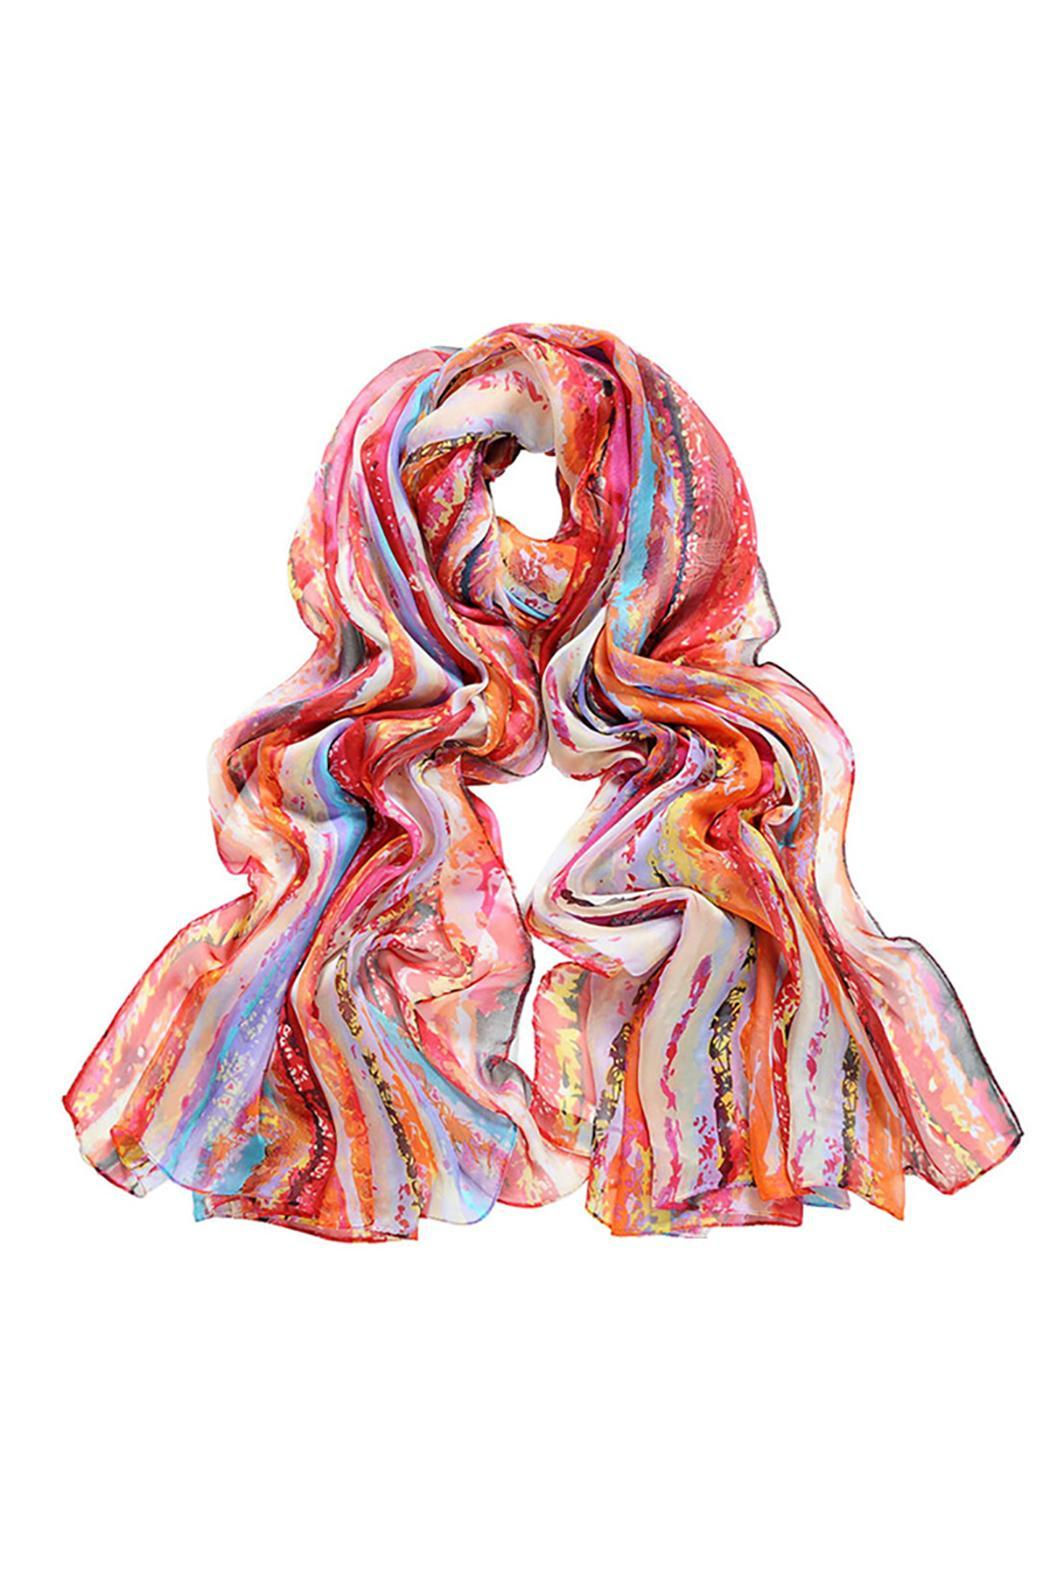 Violet Del Mar Digital Wave Scarf - Main Image